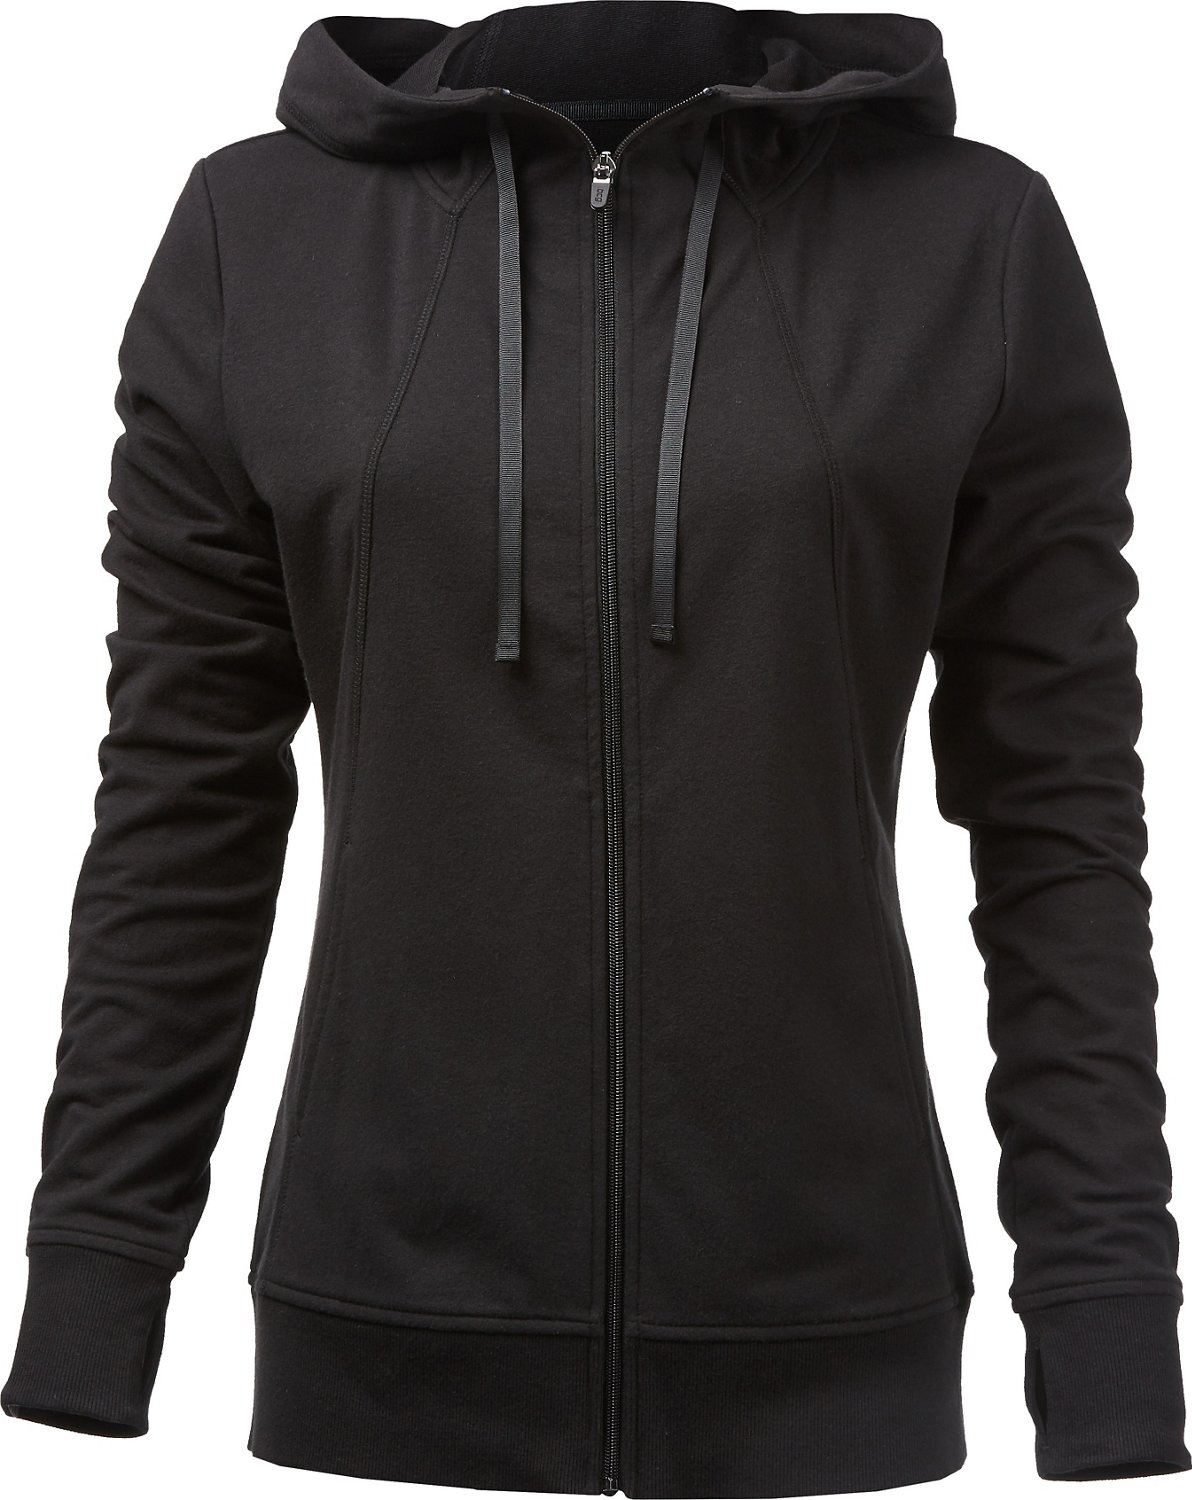 b23abd49dea6 Display product reviews for BCG Women s Full Zip Long Sleeve Hoodie